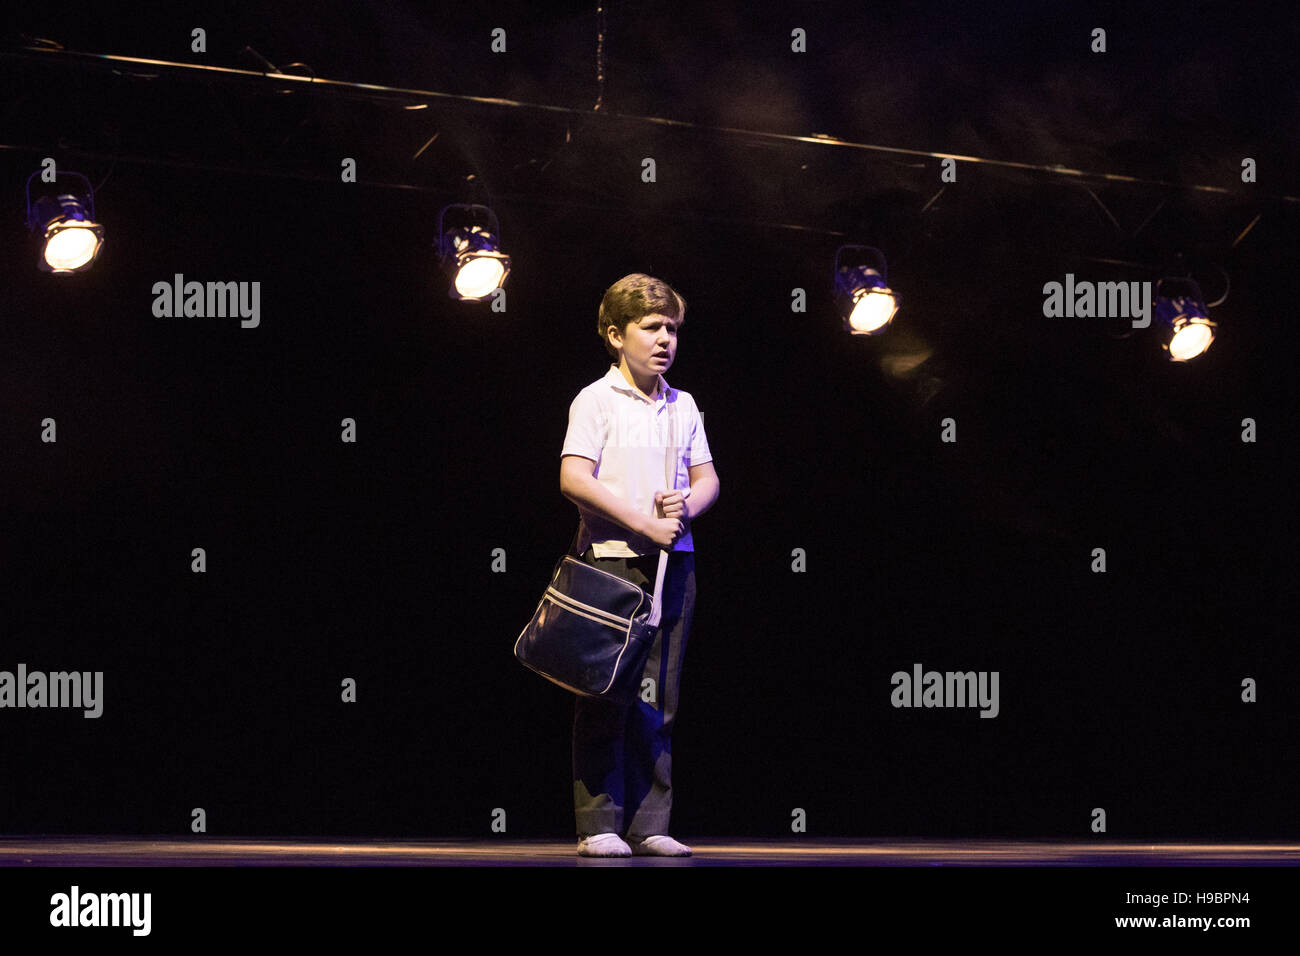 Hamburg, Germany. 22nd Nov, 2016. Lewis Smallman, cast member of the muscial Billy Elliot, singing during a press - Stock Image